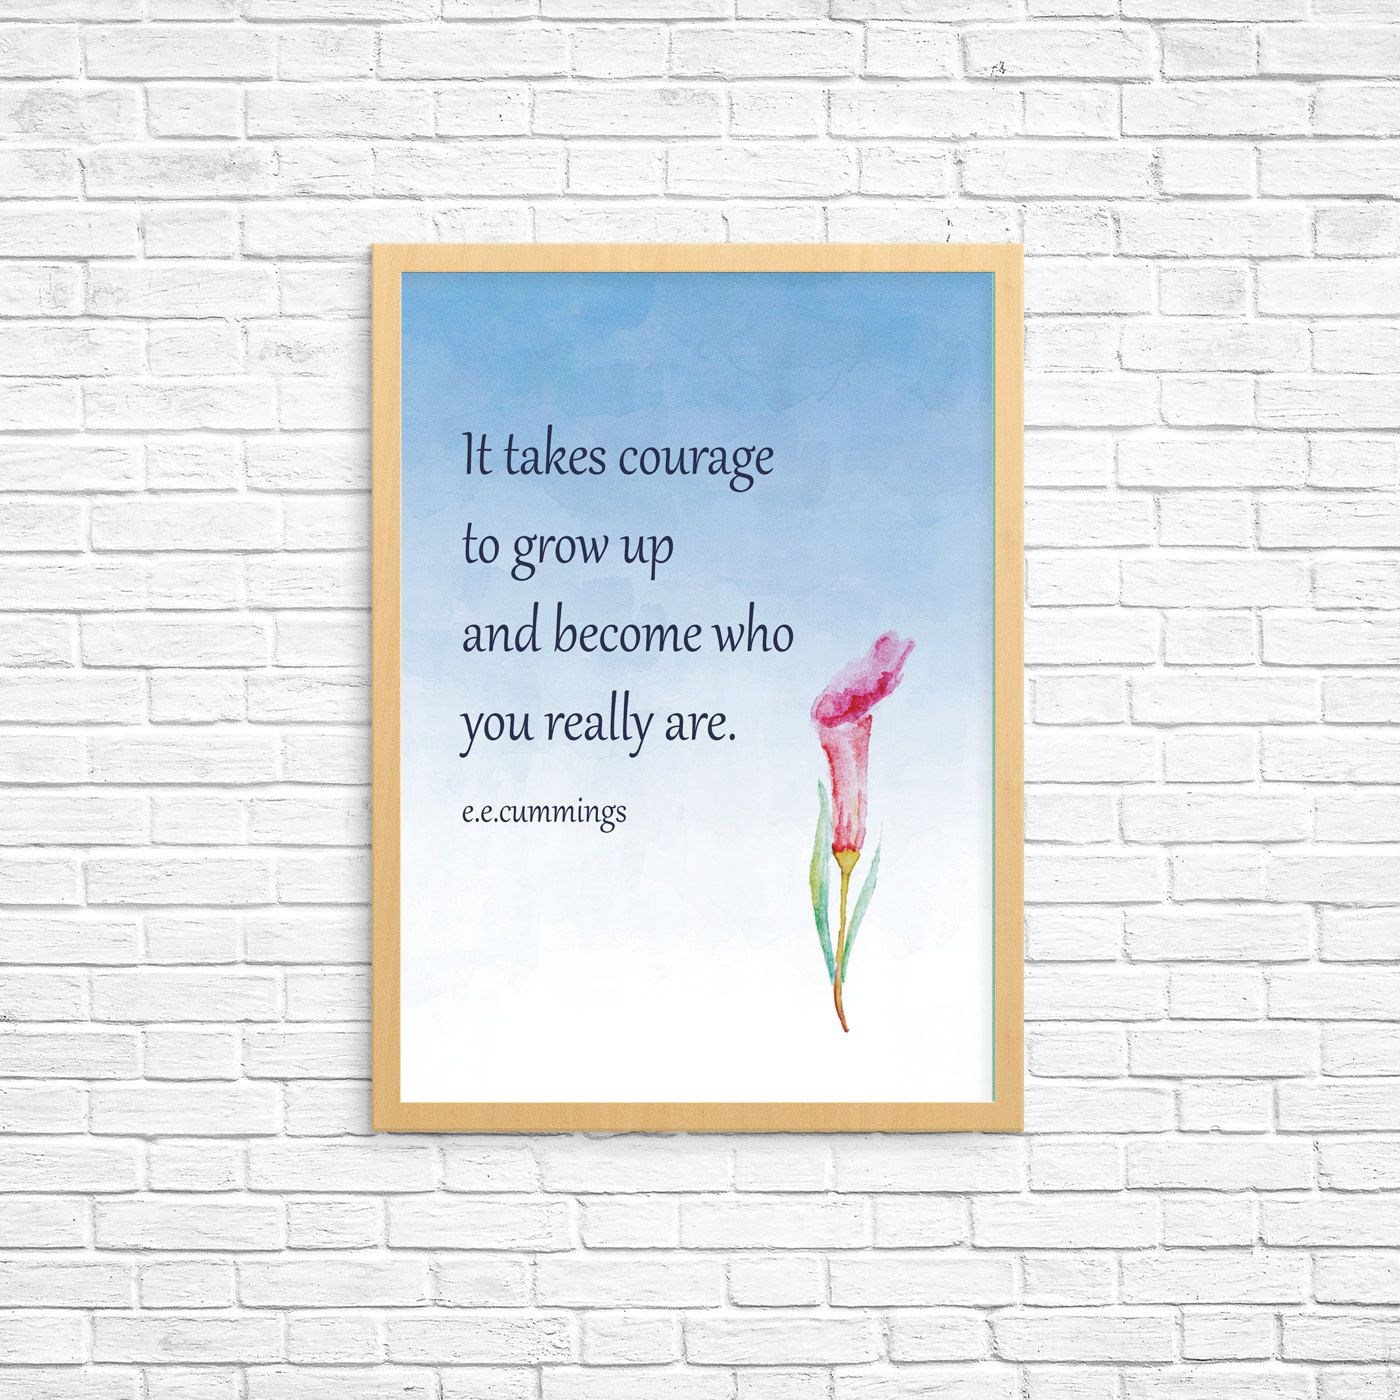 It takes courage... e.e.cummings quote. 2 print options Instant download printable PDF diy digital wall art Motivational Inspirational print by GrapevineDesignShop on Etsy